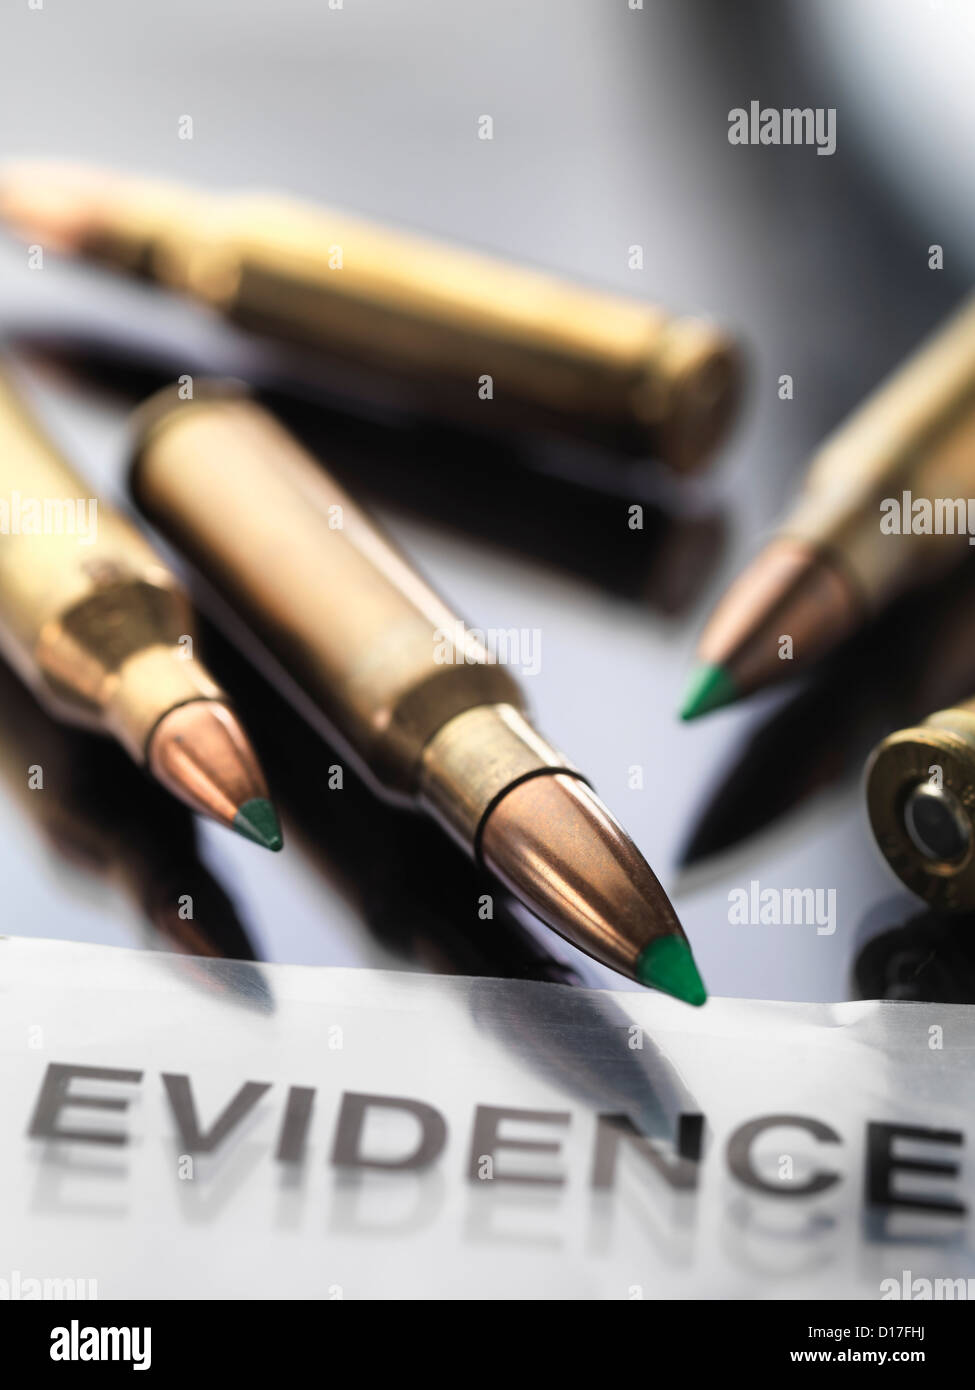 Bullets sitting on evidence bag in lab - Stock Image